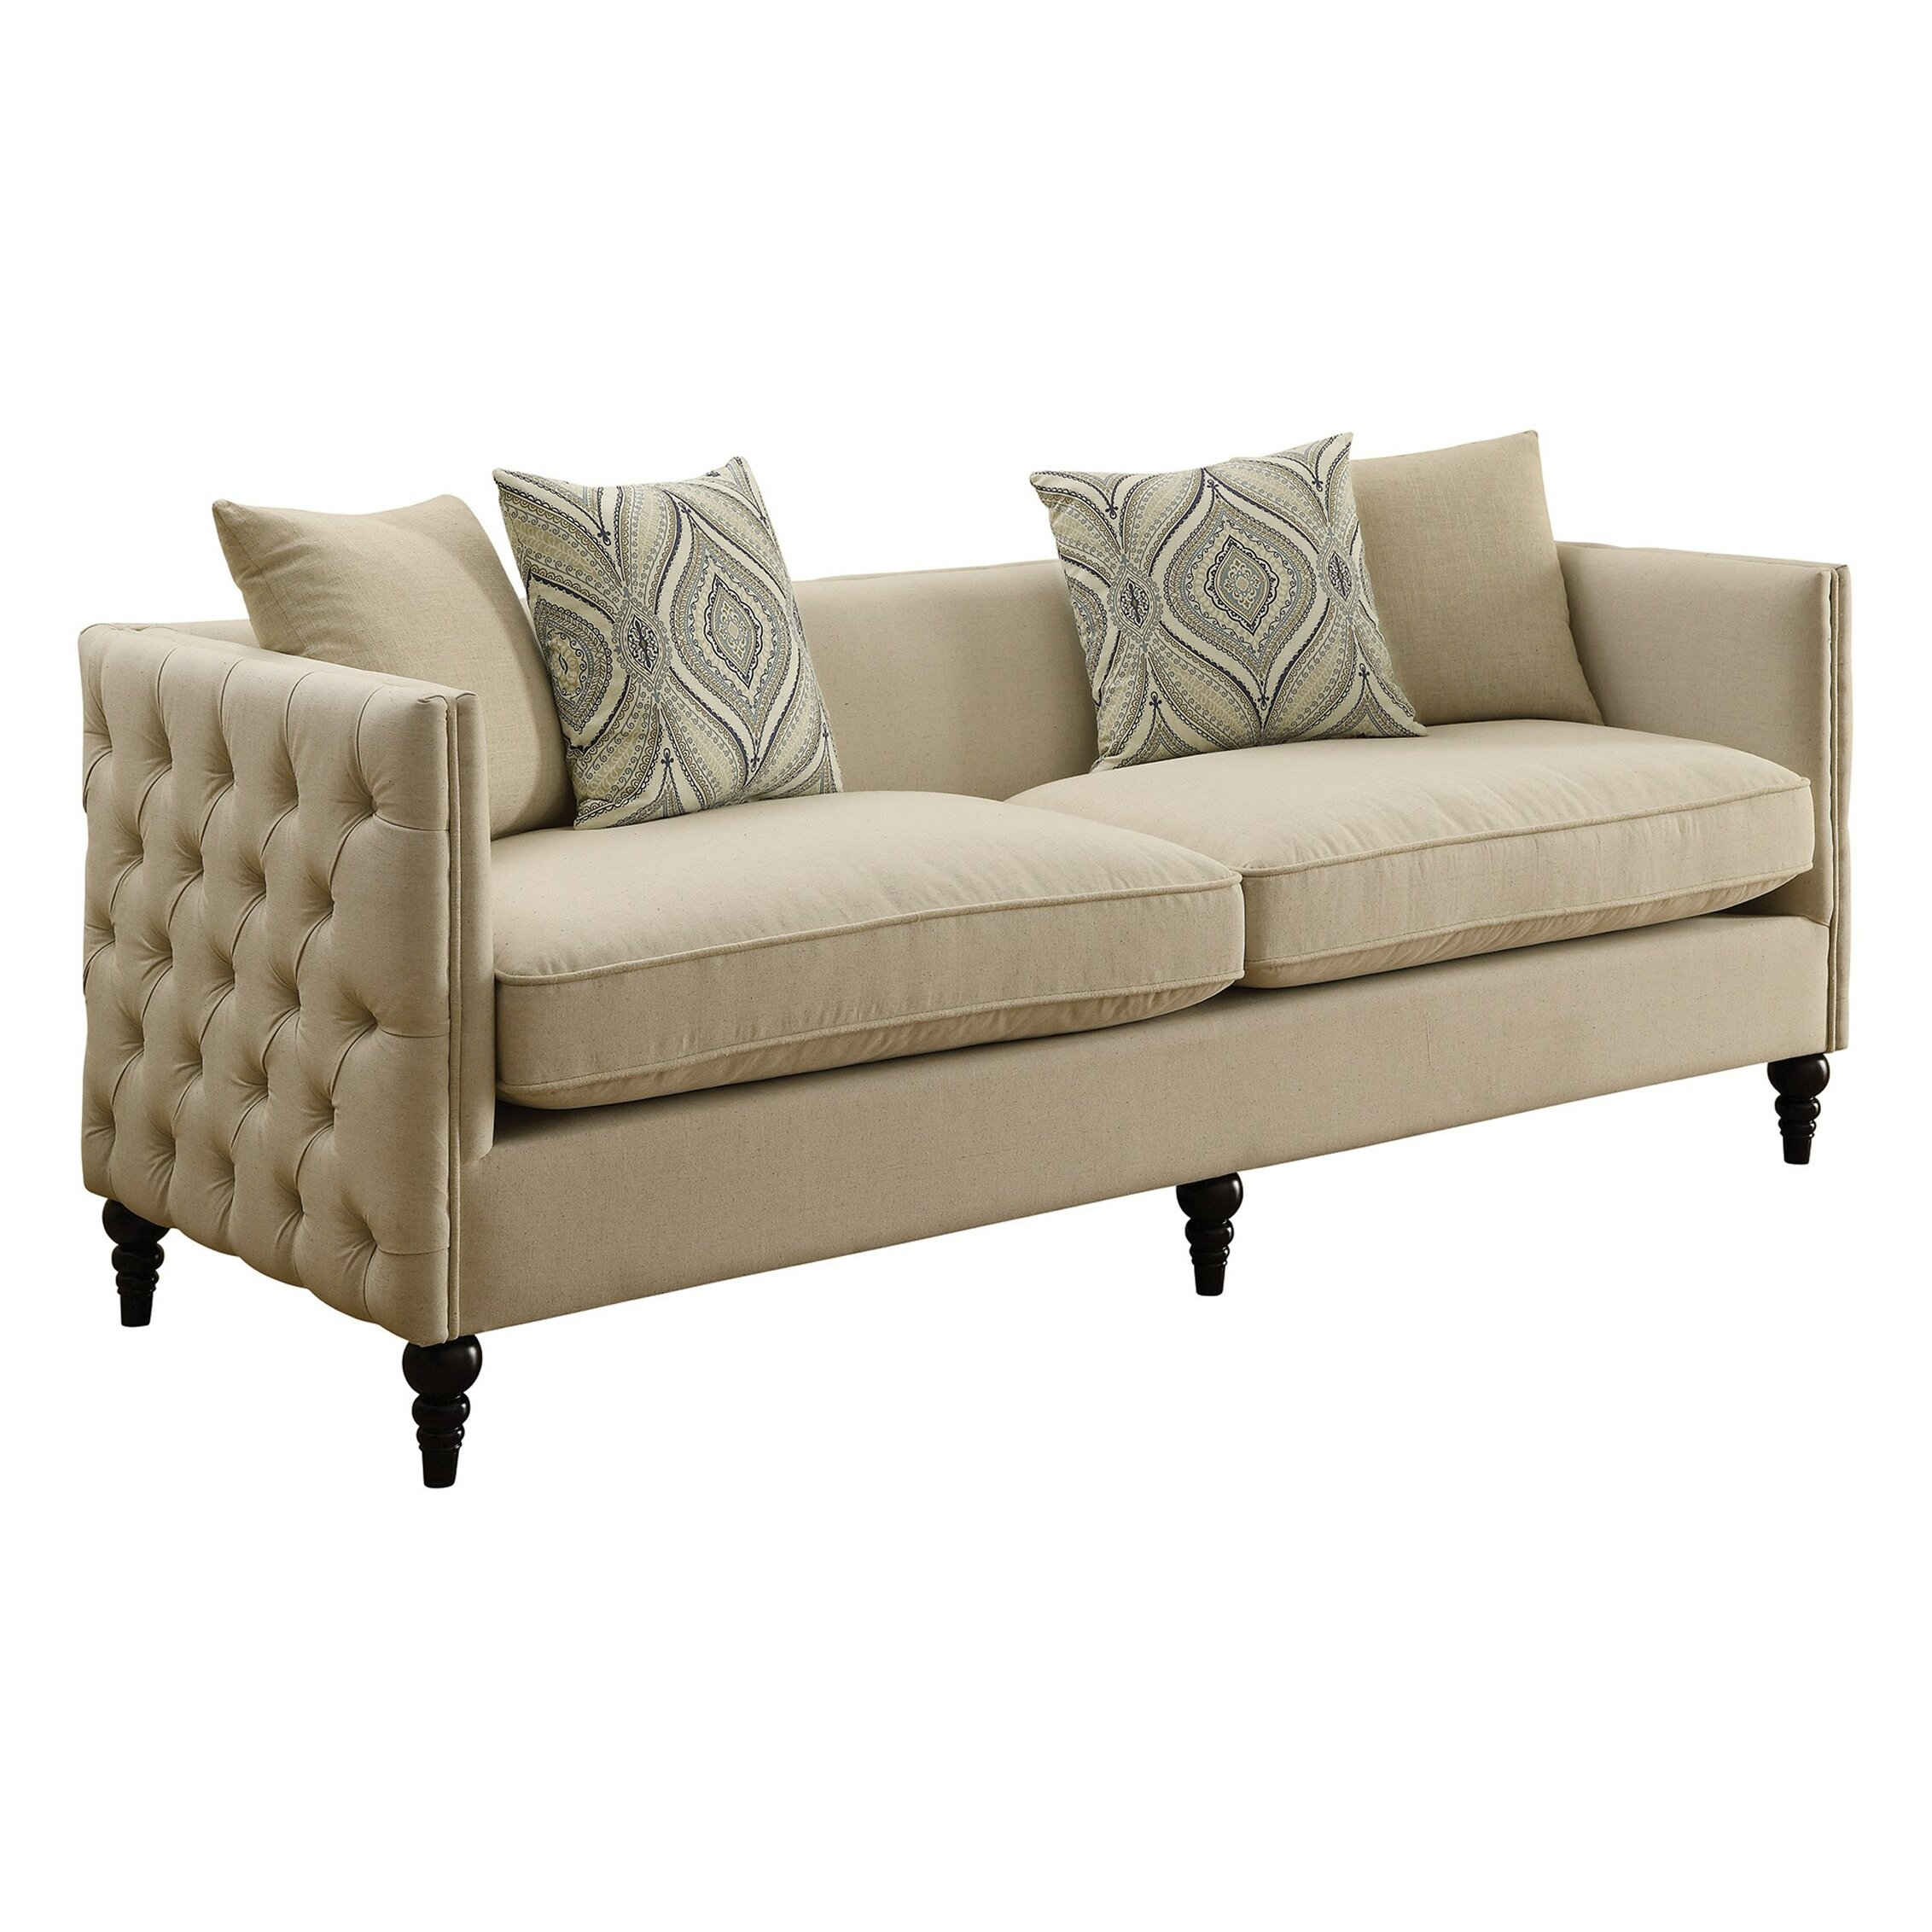 Infini furnishings new rochelle sofa and loveseat set wayfair Couches and loveseats